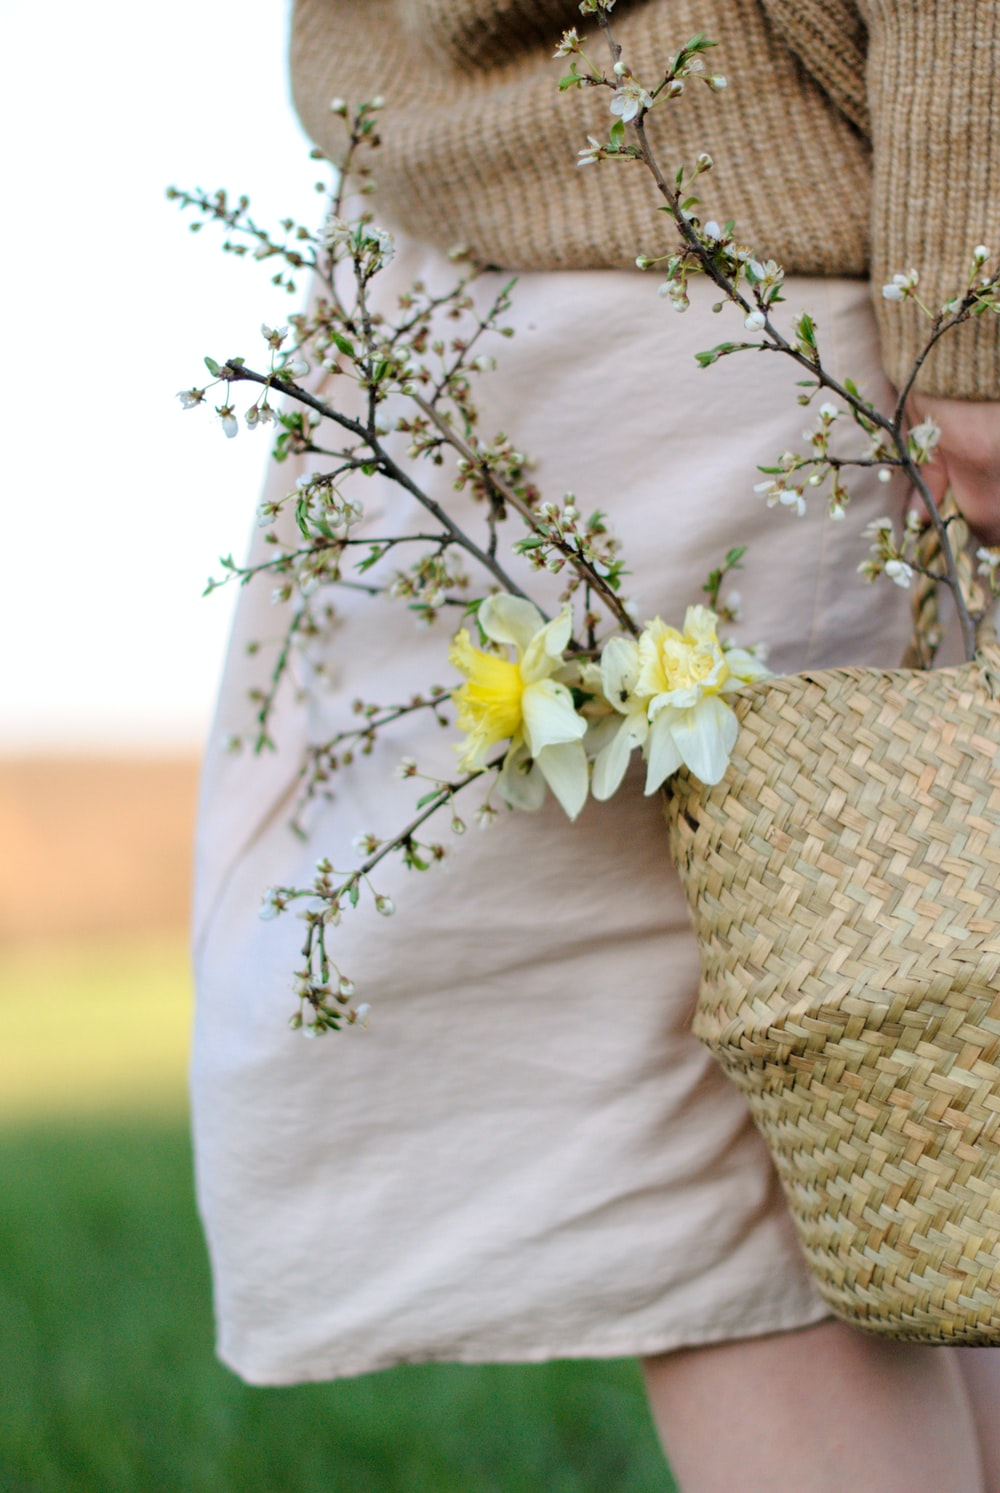 yellow flowers on brown woven basket